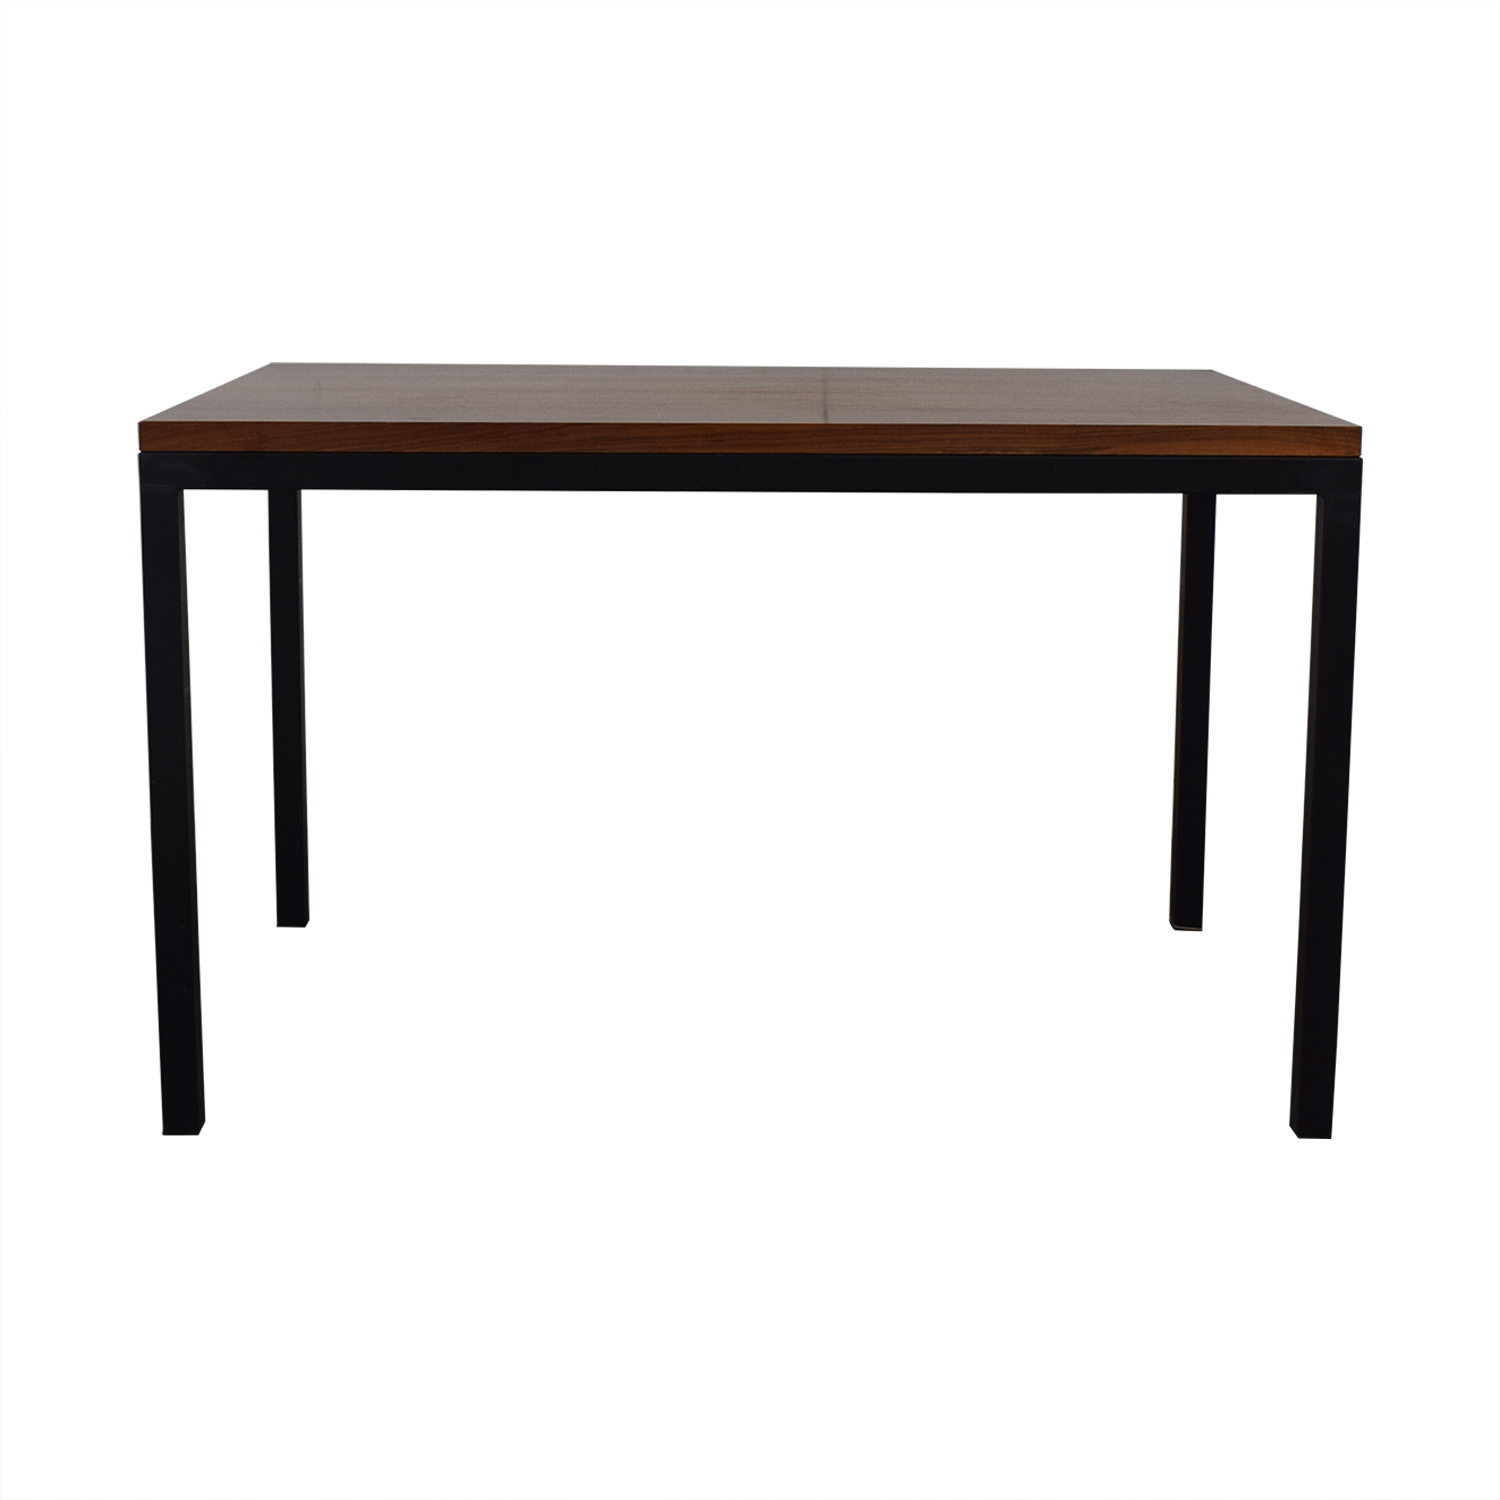 buy Room & Board Room & Board Dining Table online